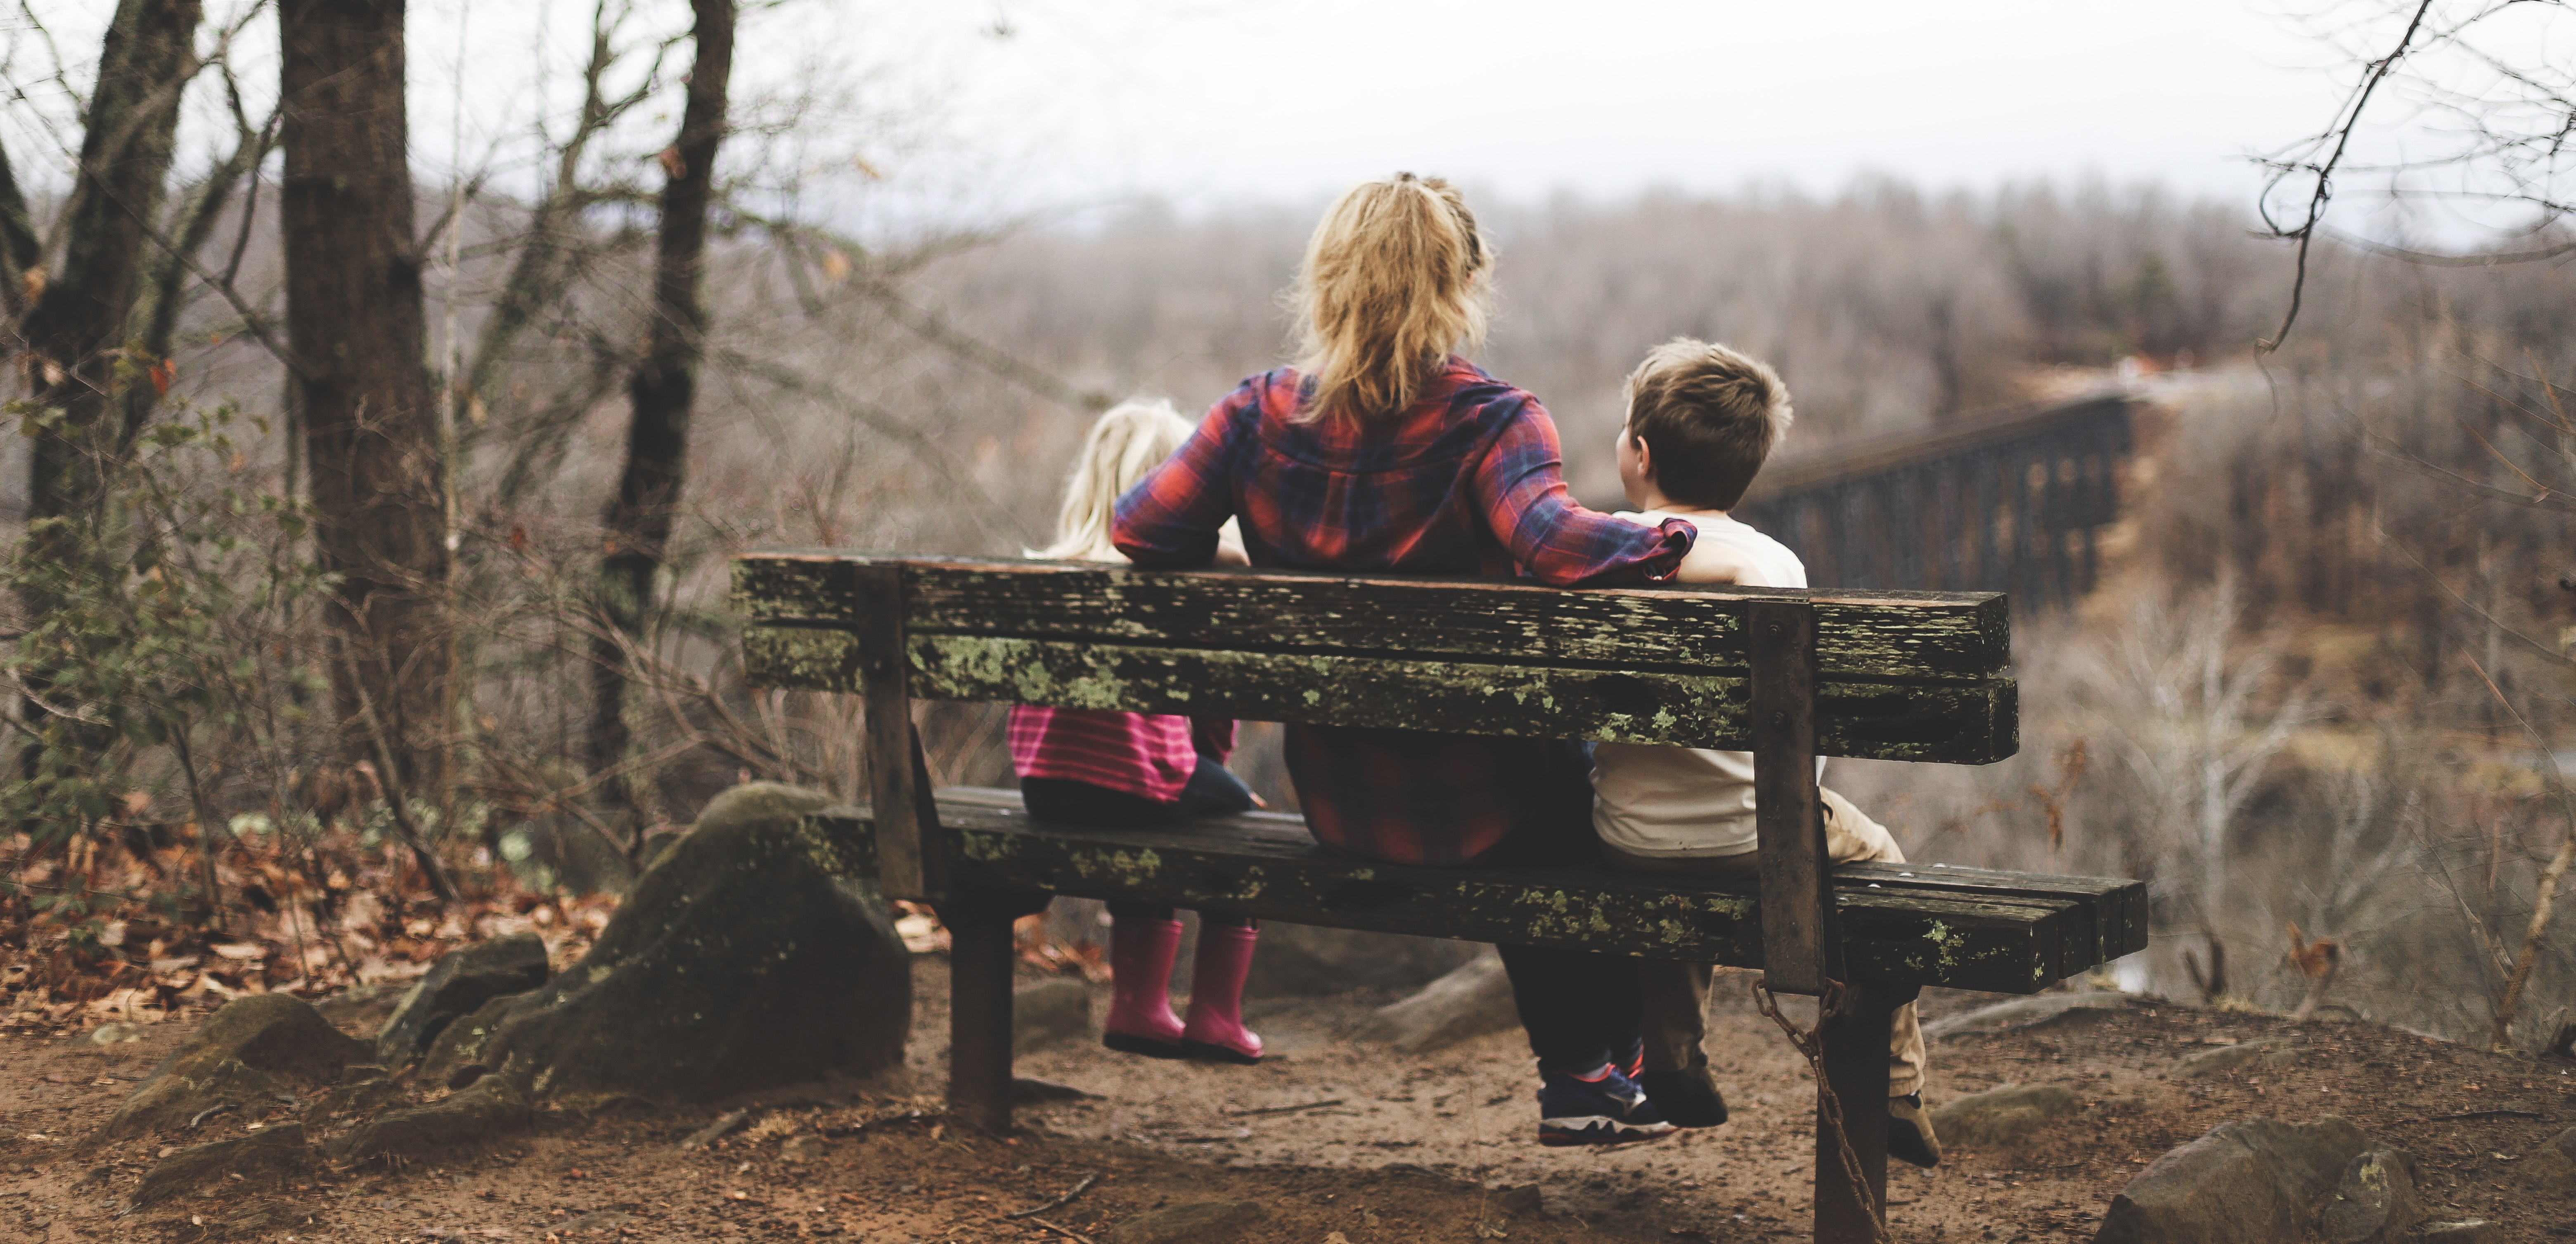 woman between two childrens sitting on brown wooden bench during daytime